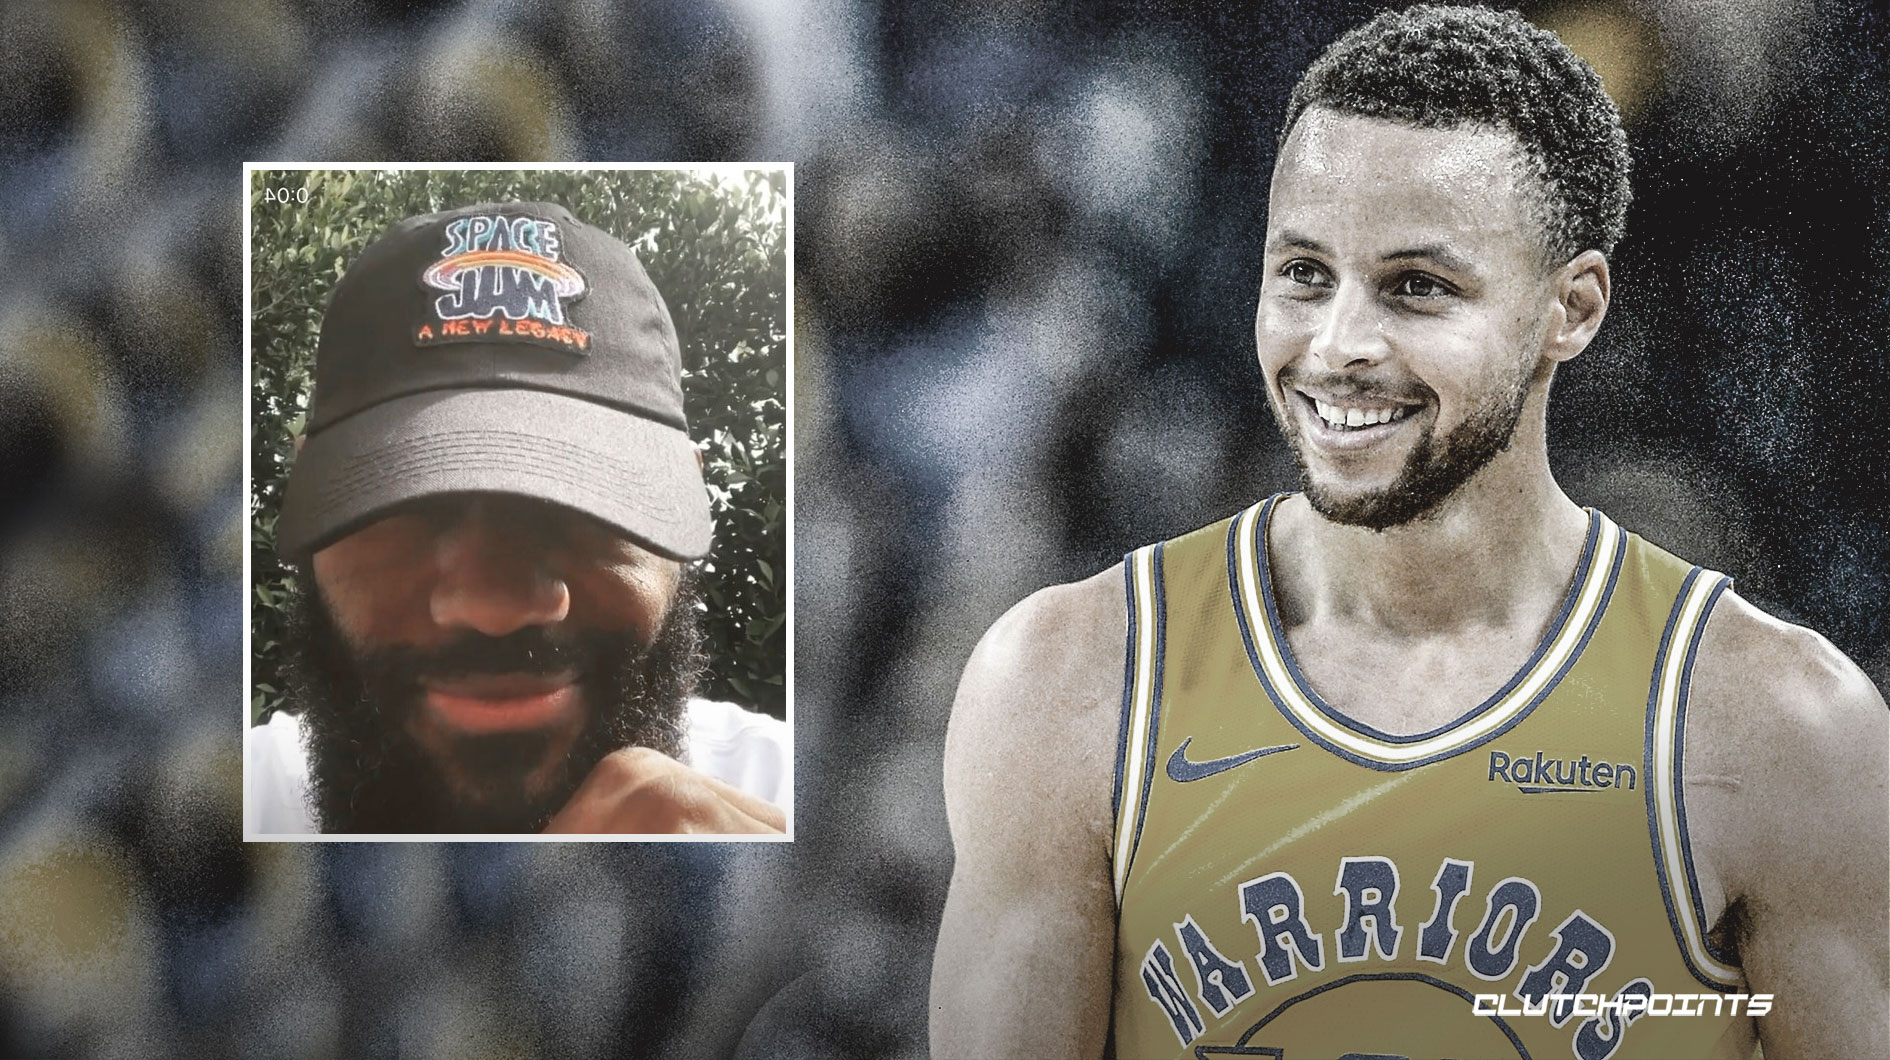 Stephen Curry, Warriors, Space Jam 2